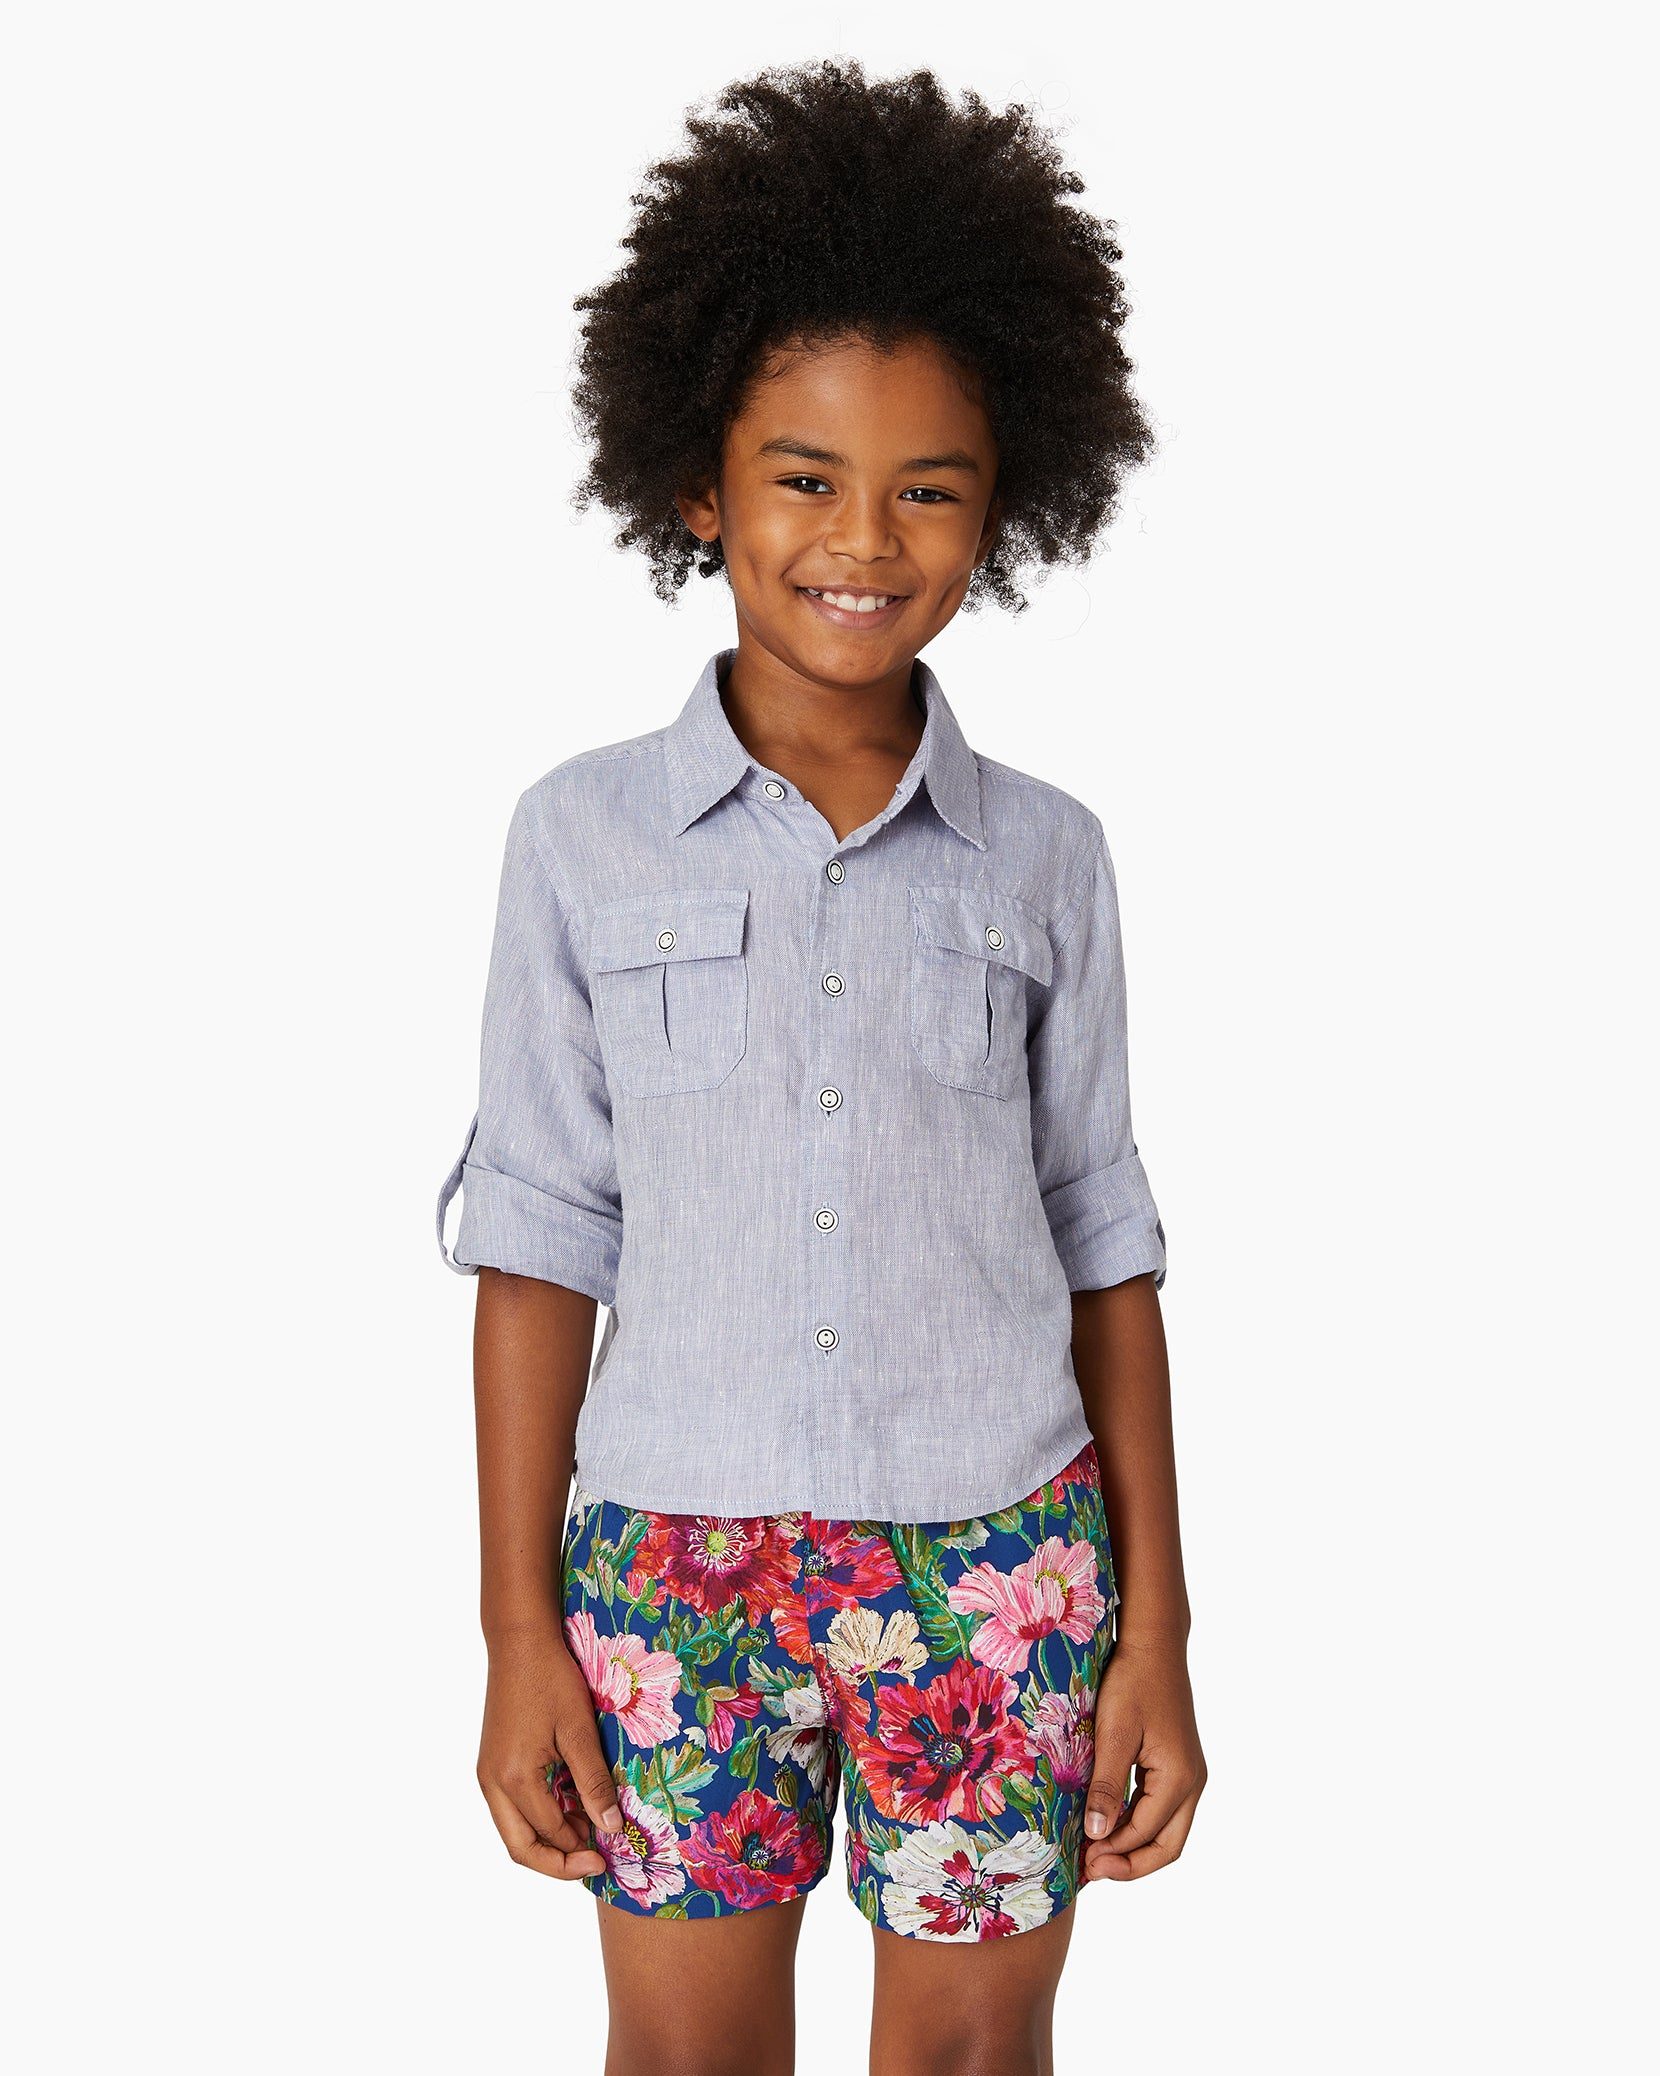 Boys Linen Garret Shirt in Denim - 4 - Onia